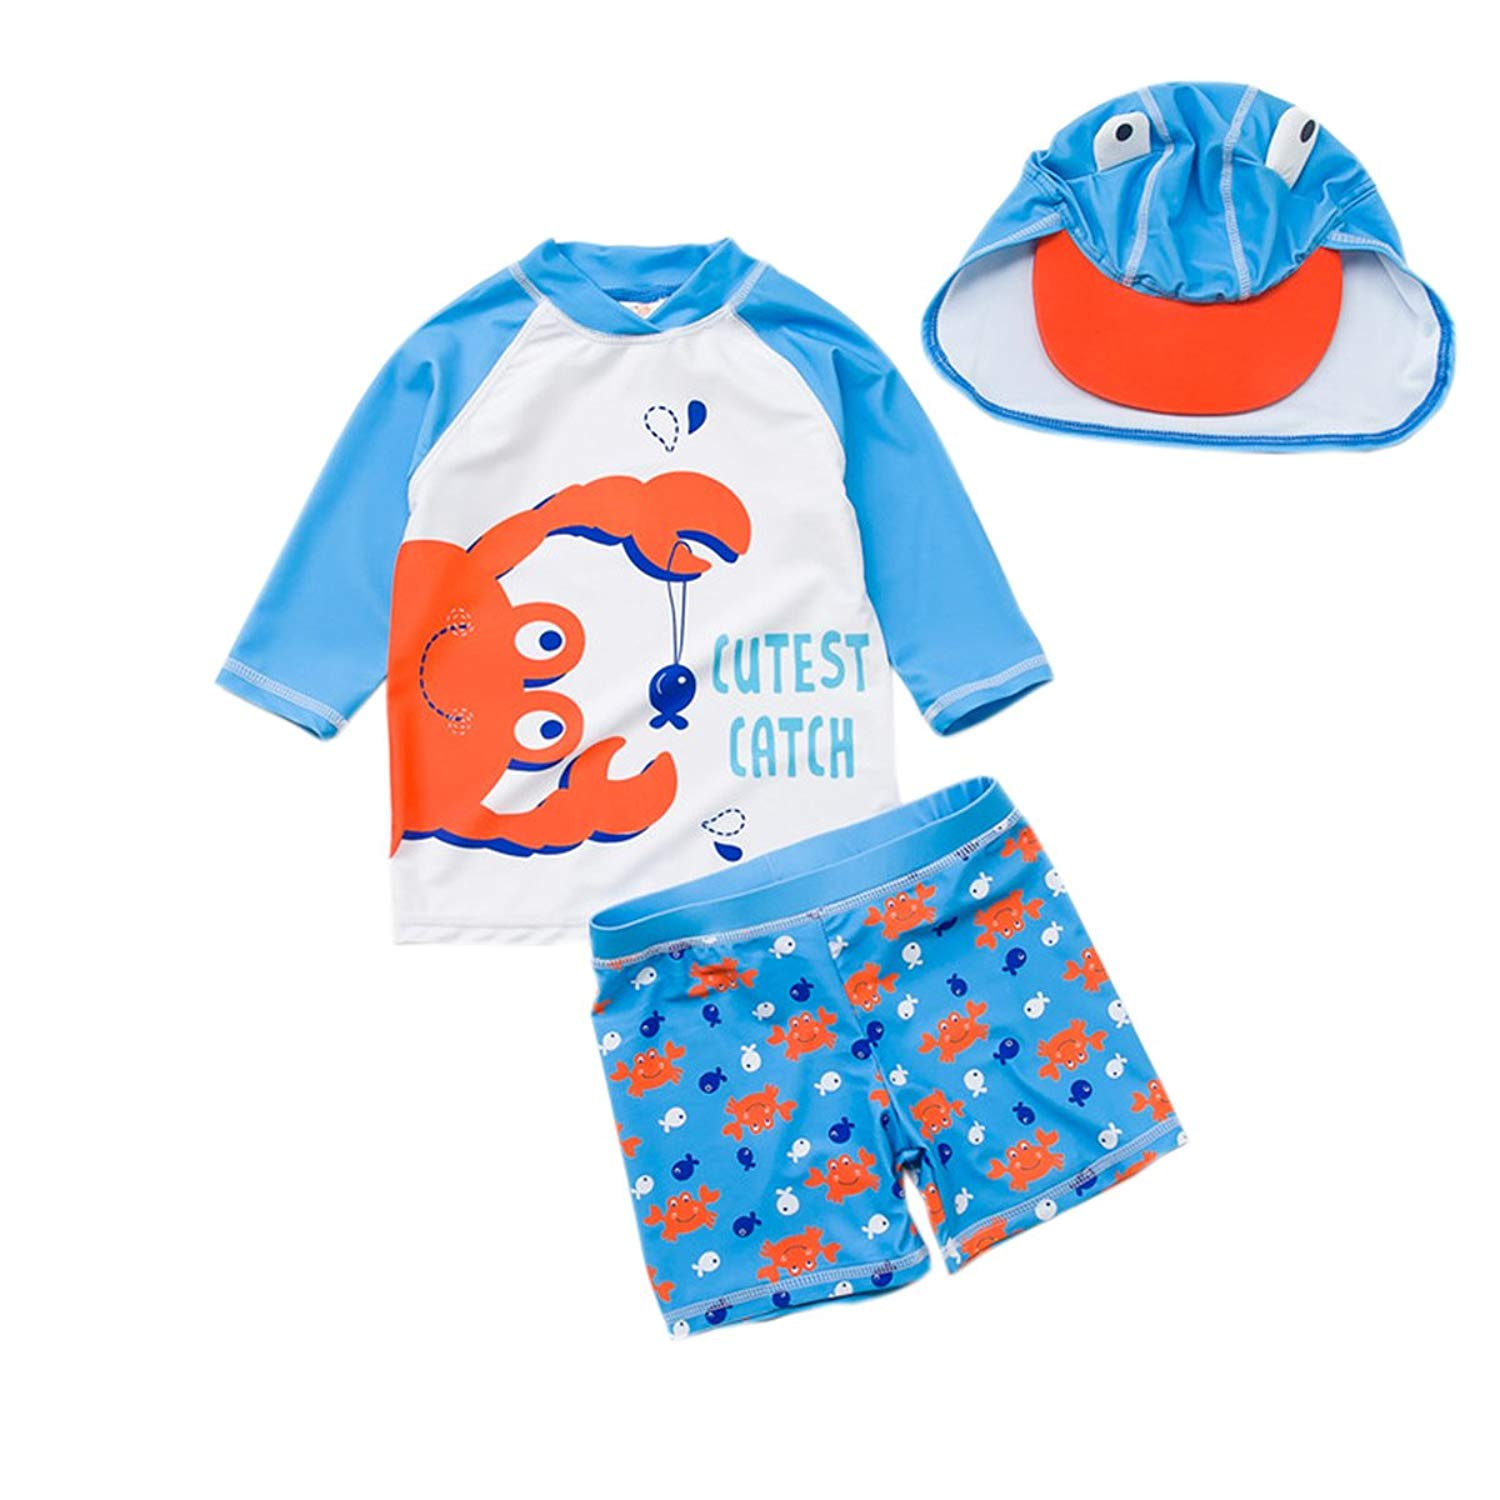 947670bedb Get Quotations · TAIYCYXGAN Baby Toddler Boys Two Pieces Swimsuit Set Boys  Long Sleeve Crab Bathing Suit Rash Guards